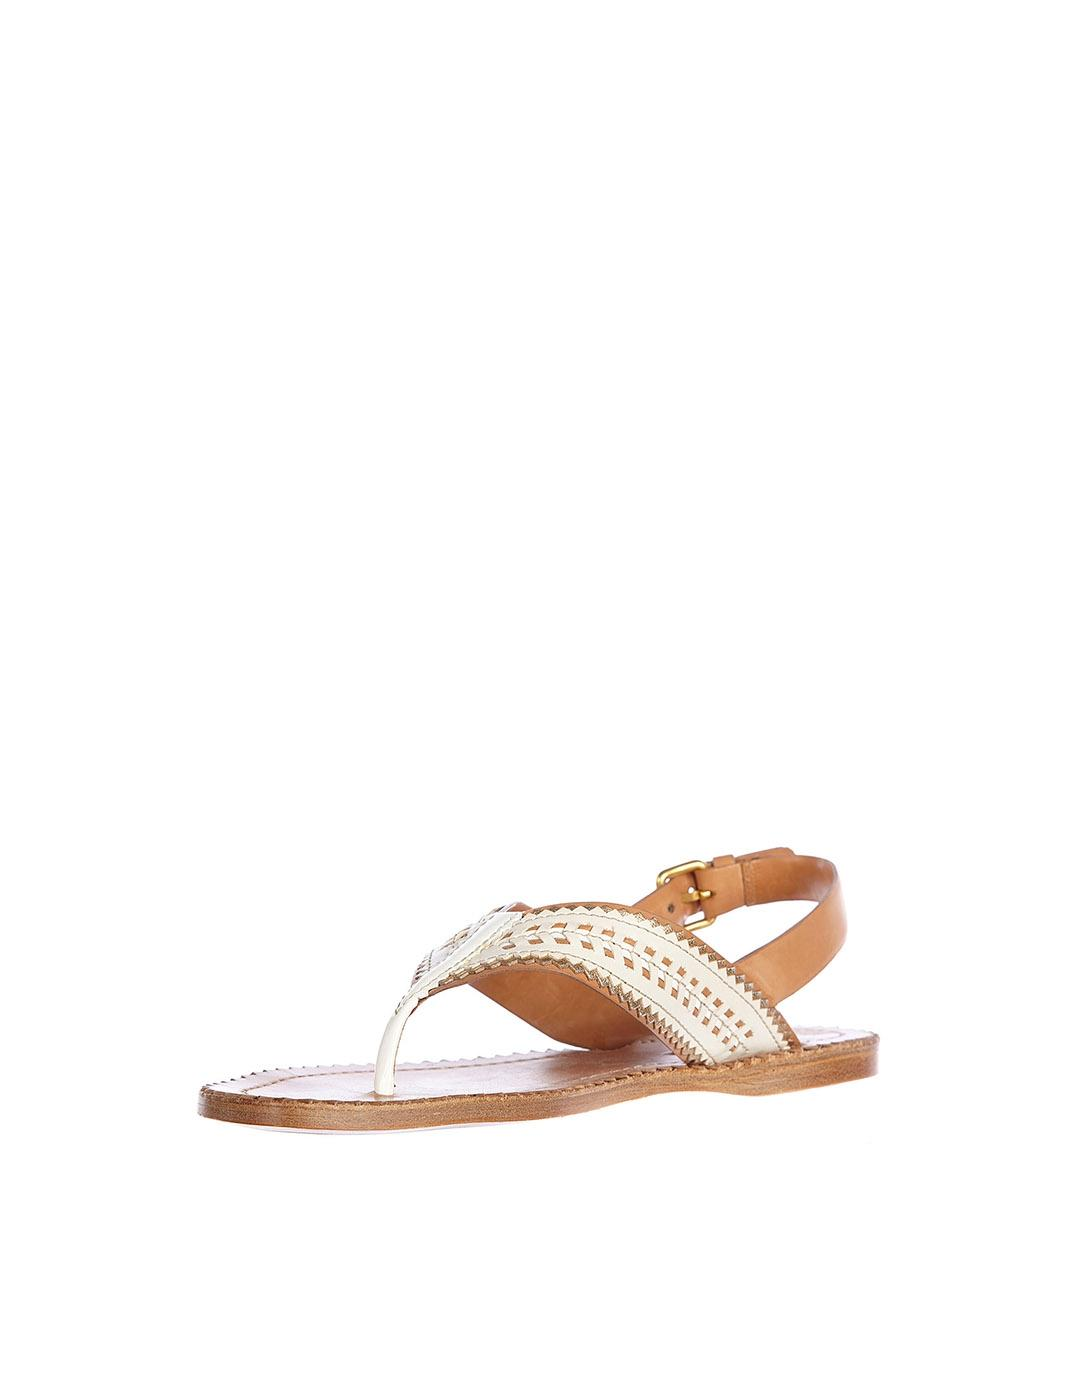 Sandalias Car Shoe beige Natural Verni